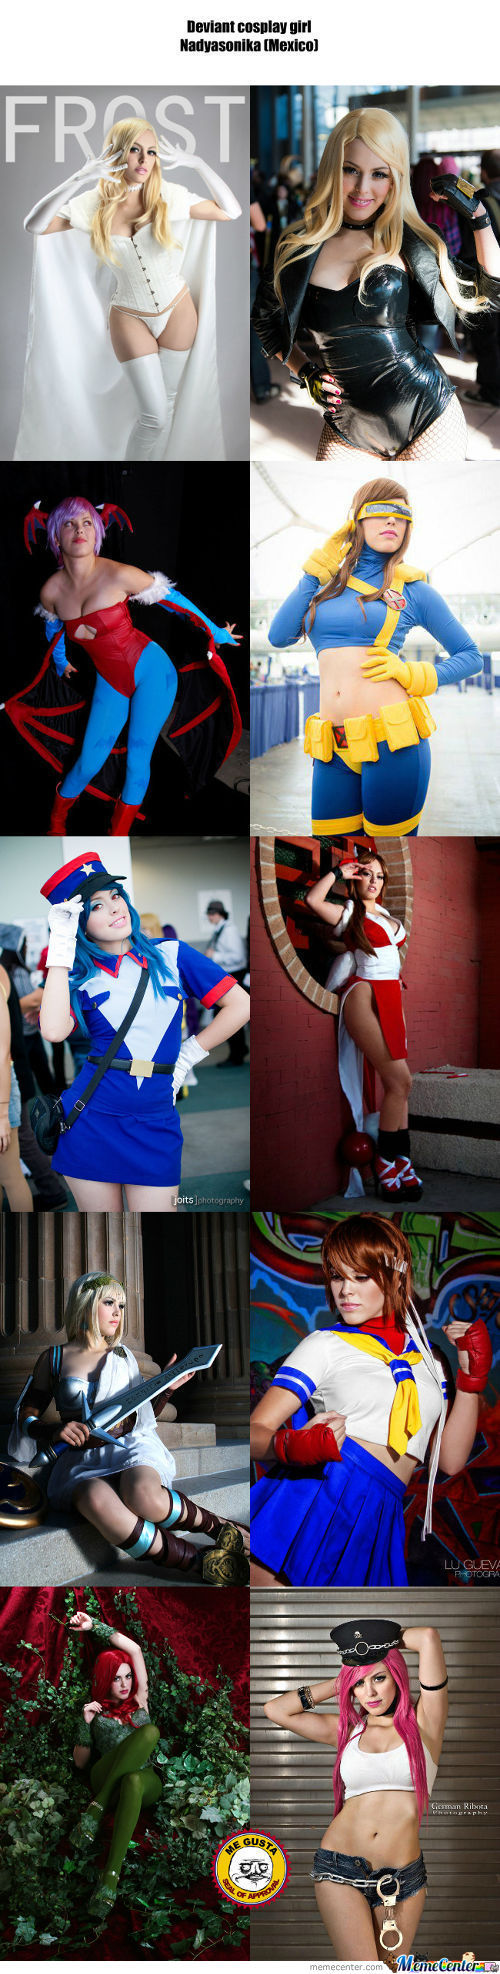 Cosplay Girl 67 : Nadyasonika (Mexico)